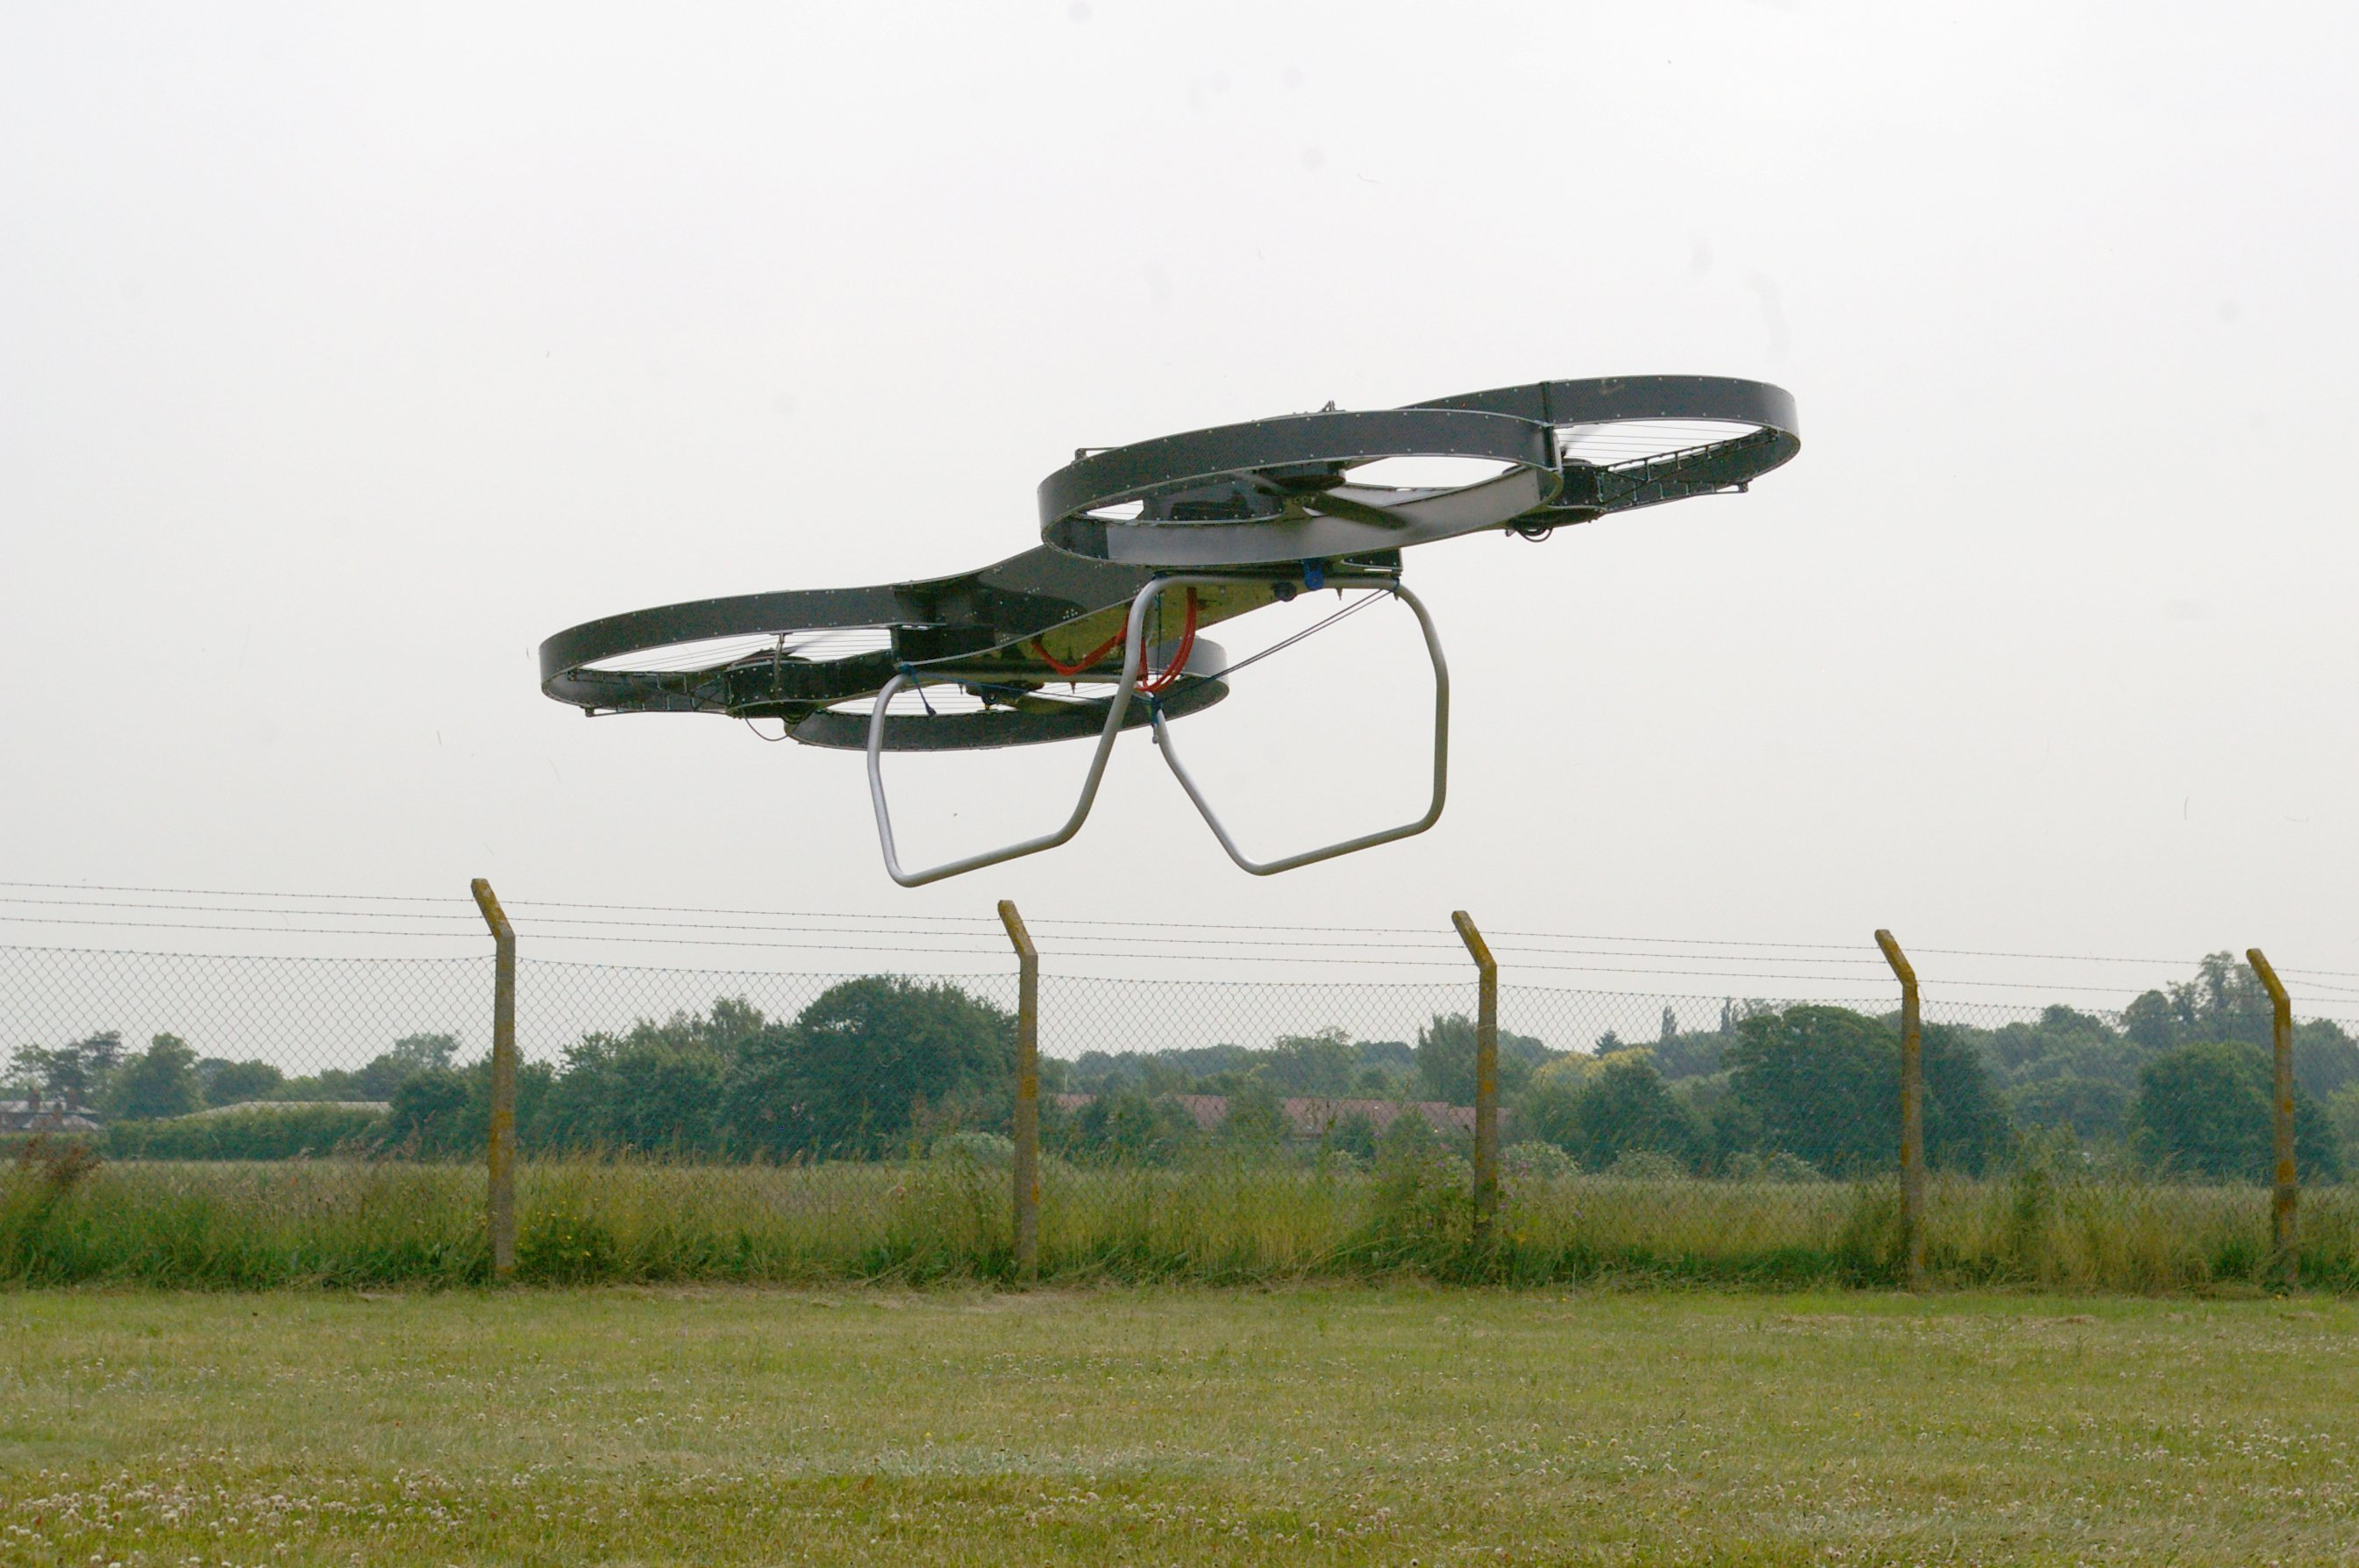 'Hoverbike' could join the fleet in 3 to 5 years